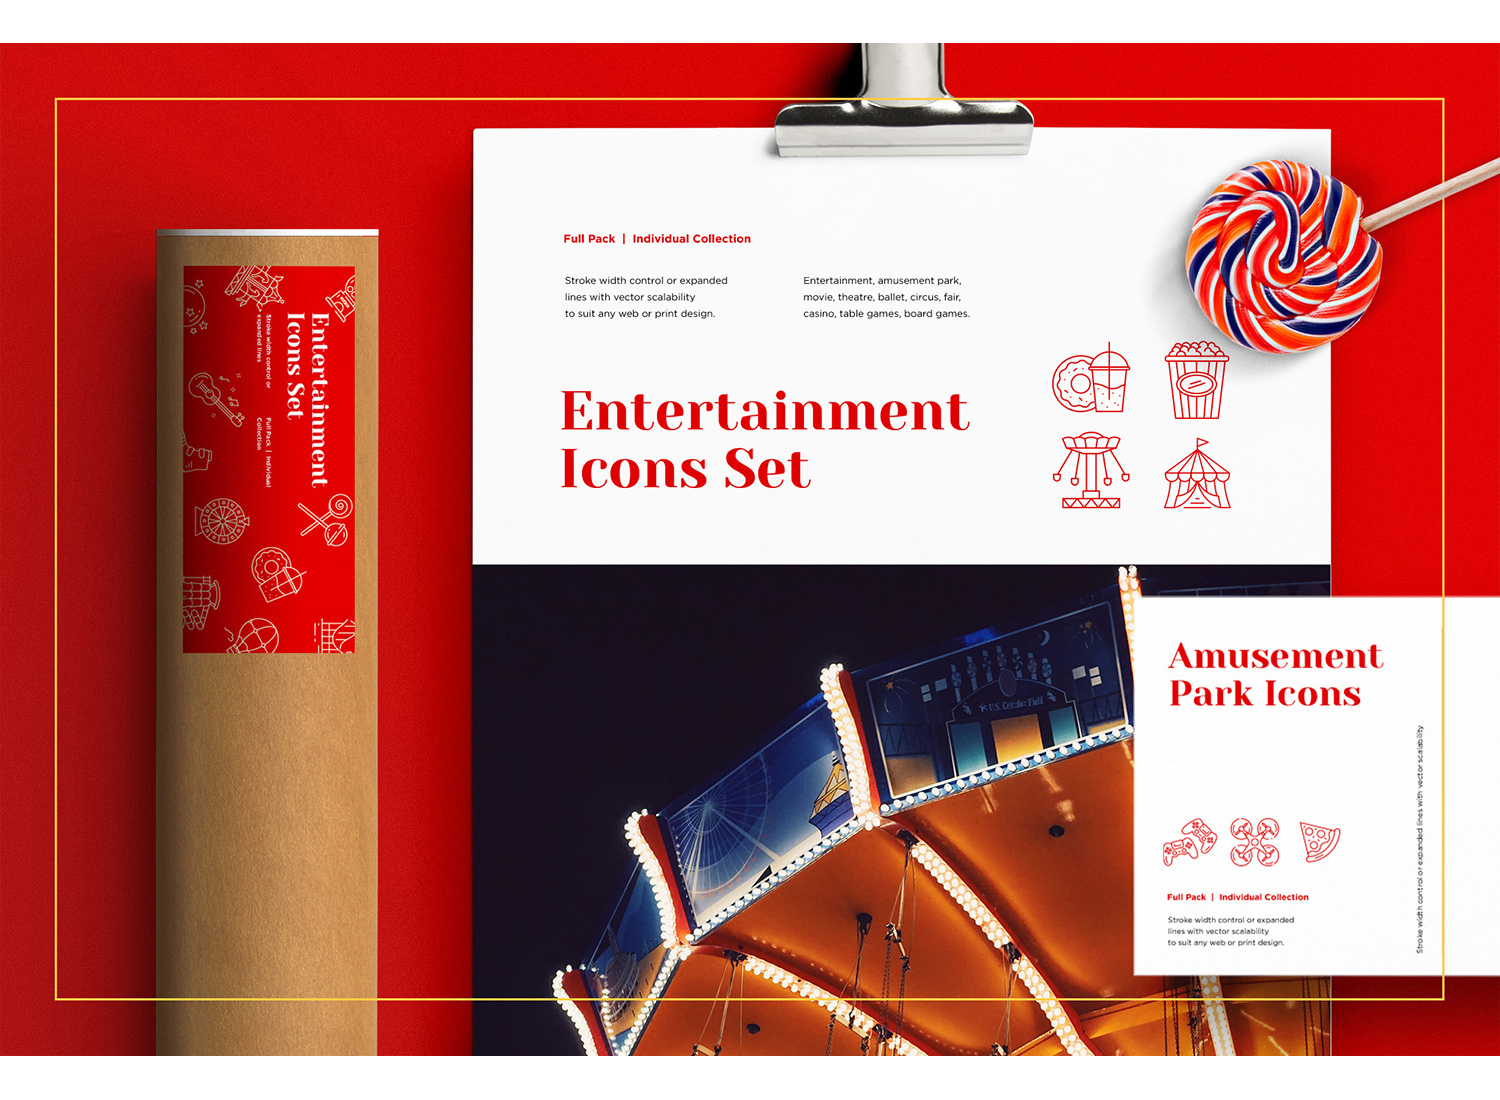 download Entertainment and Amusement Park Icons Set